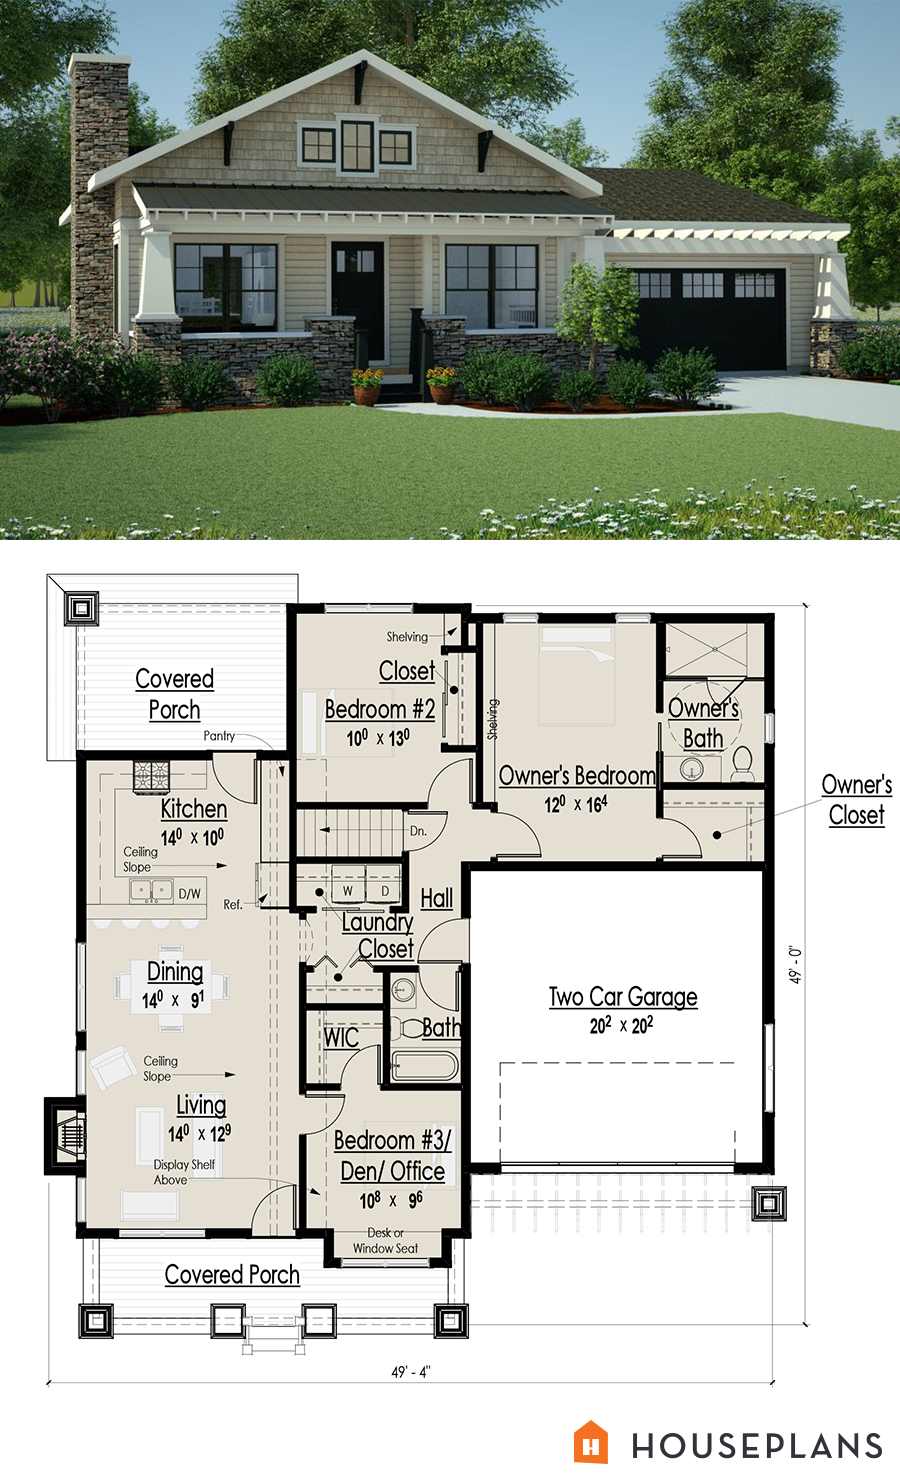 Ranch Style House Plan 3 Beds 2 5 Baths 1625 Sq Ft Plan 126 143 New House Plans Ranch House Plans House Plans Farmhouse